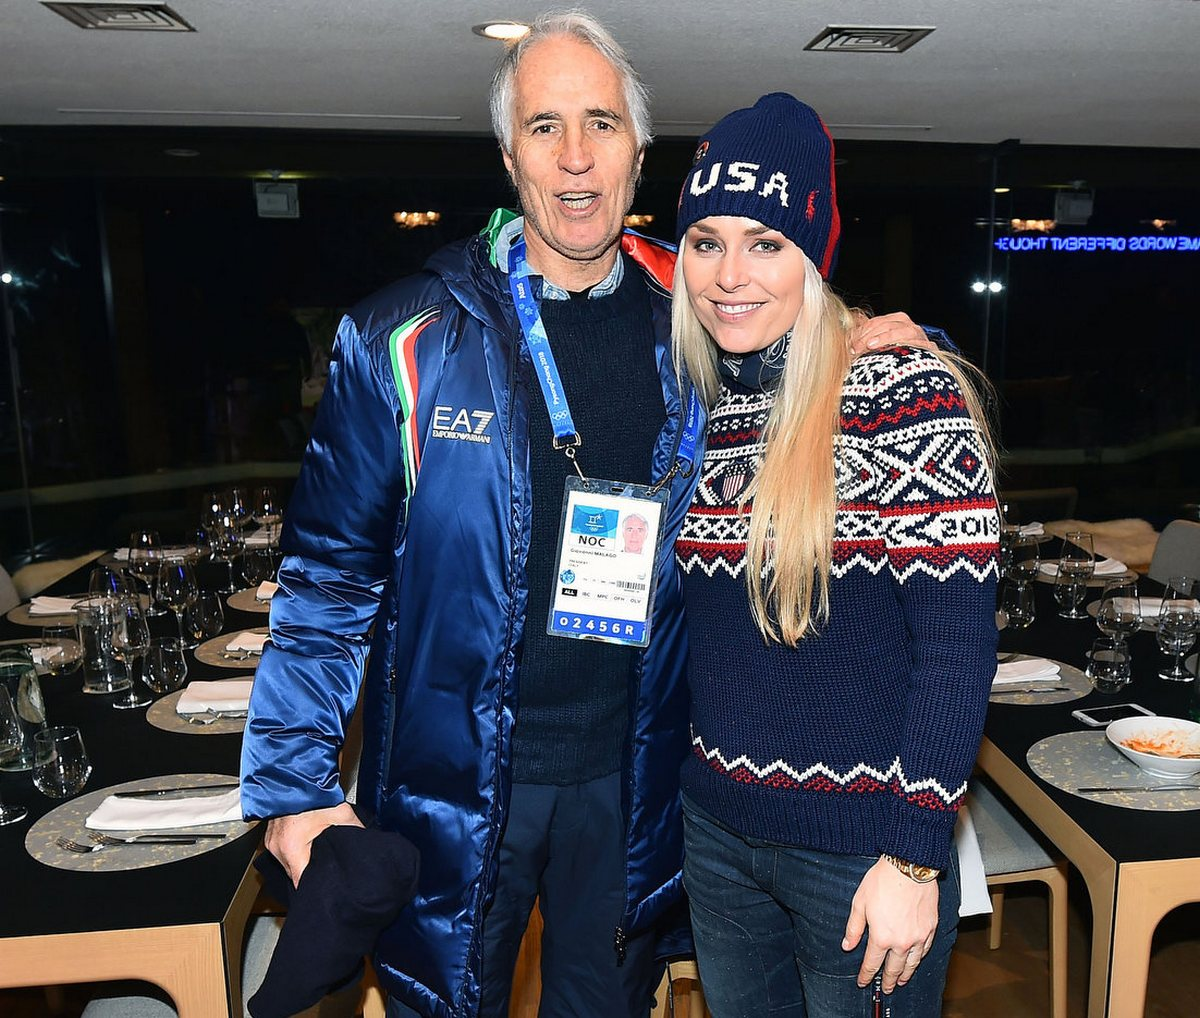 During the parade, Lindsey Vonn arrives at Casa Italia